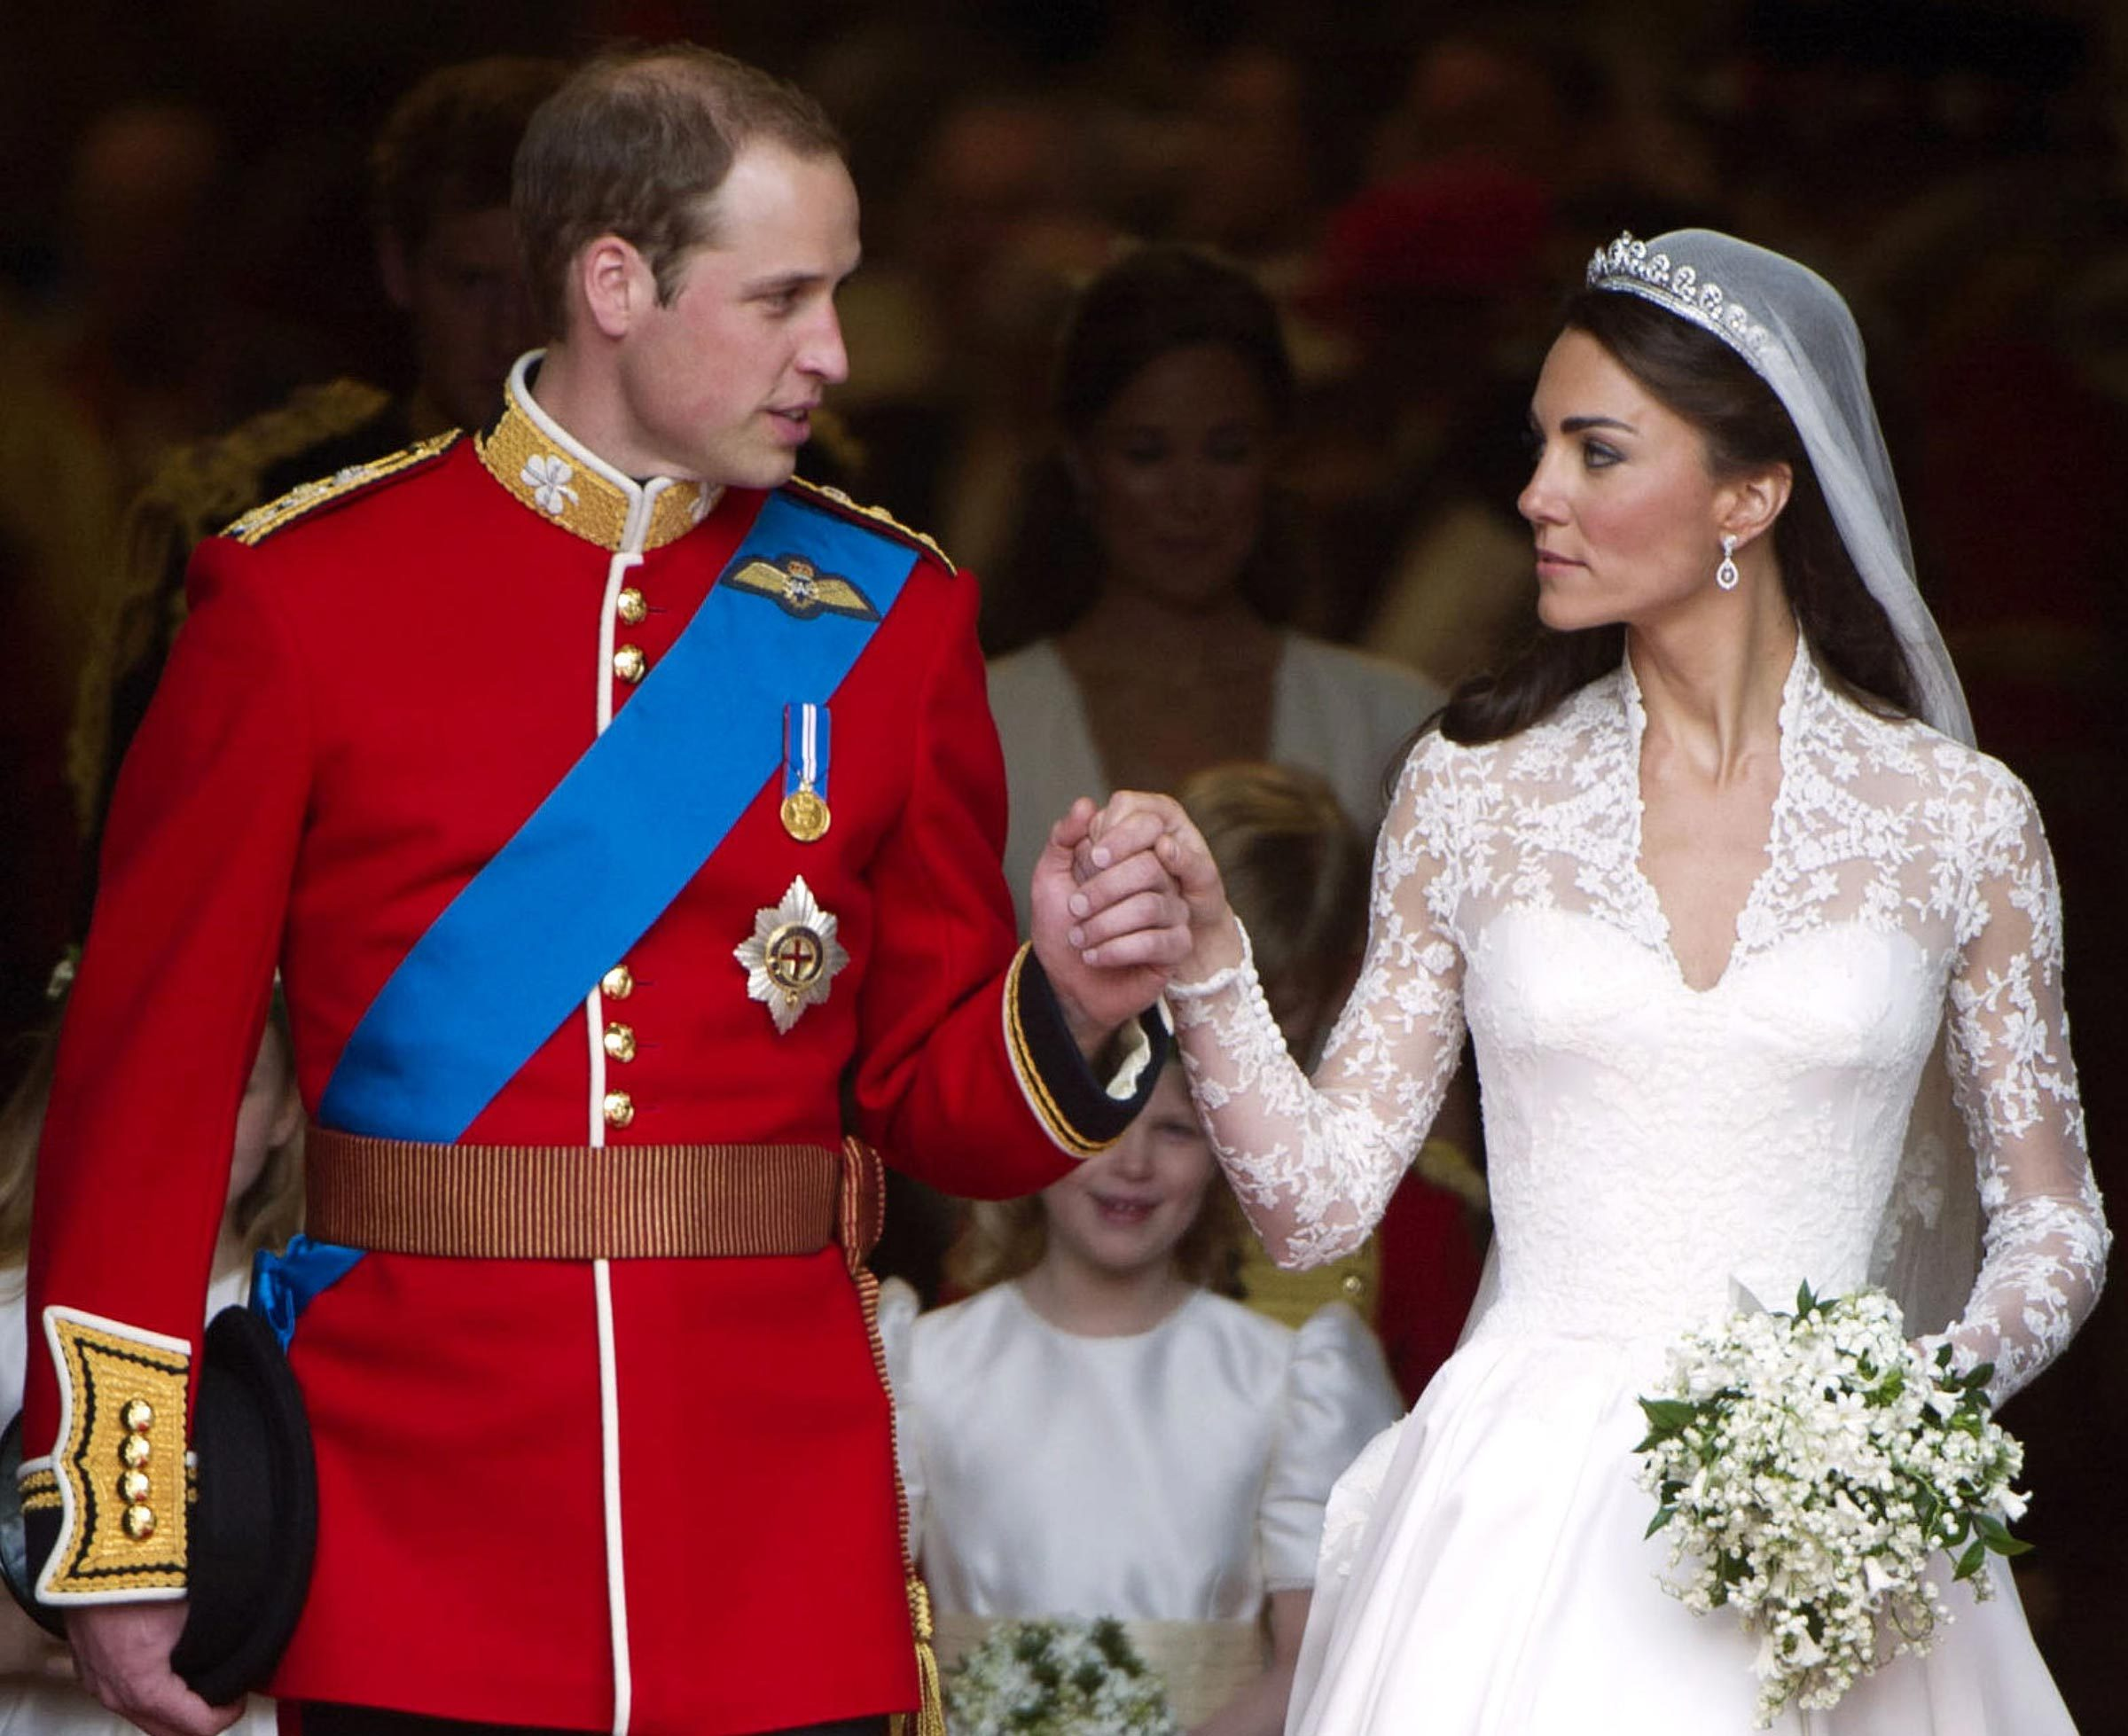 Prince William Wedding.Tiny Details About Prince William And Kate S Wedding